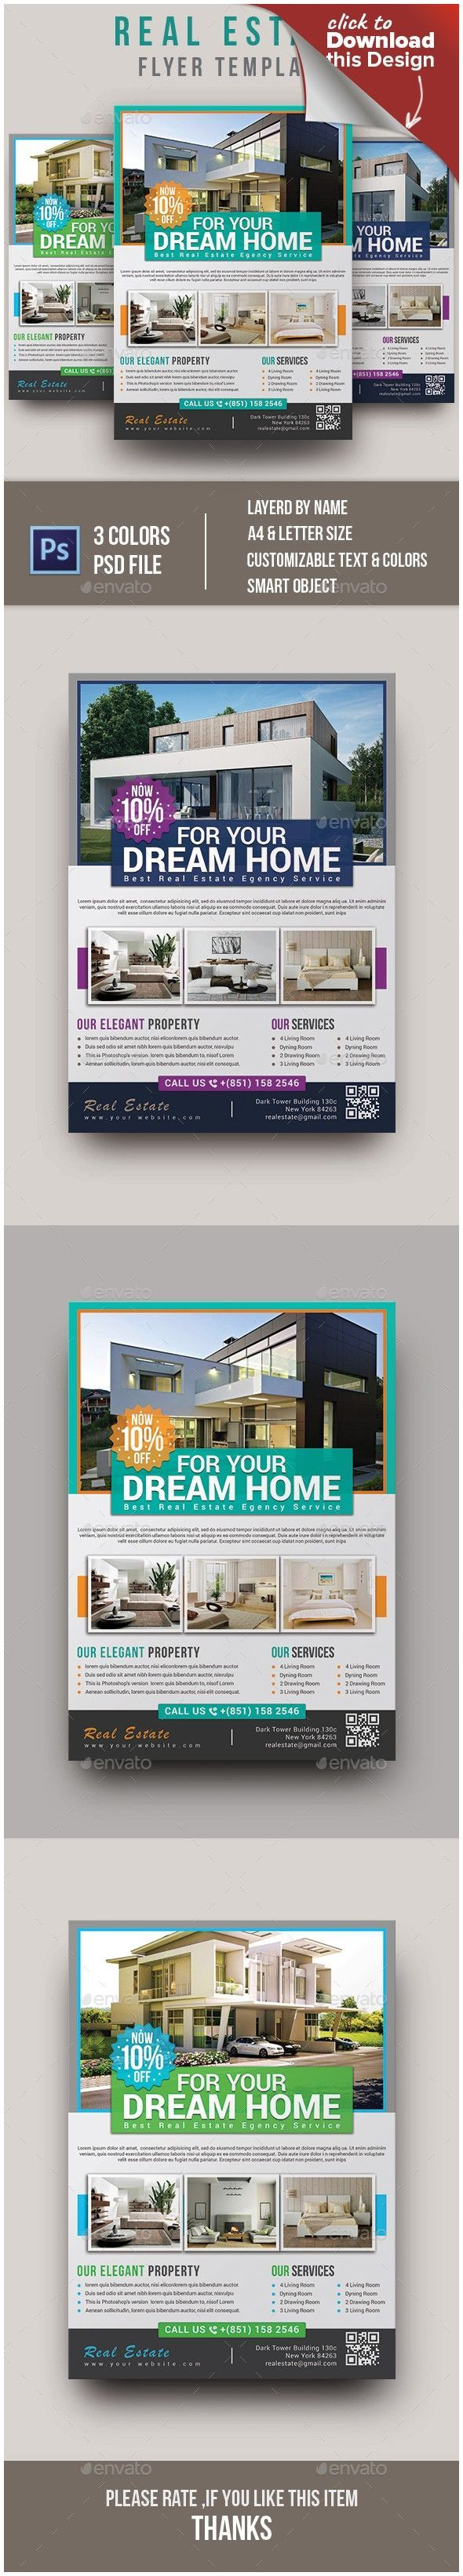 business flyer corporate flyer green home selling leaflet magazine ad marketing flyers poster promotional flyers property purple real estate